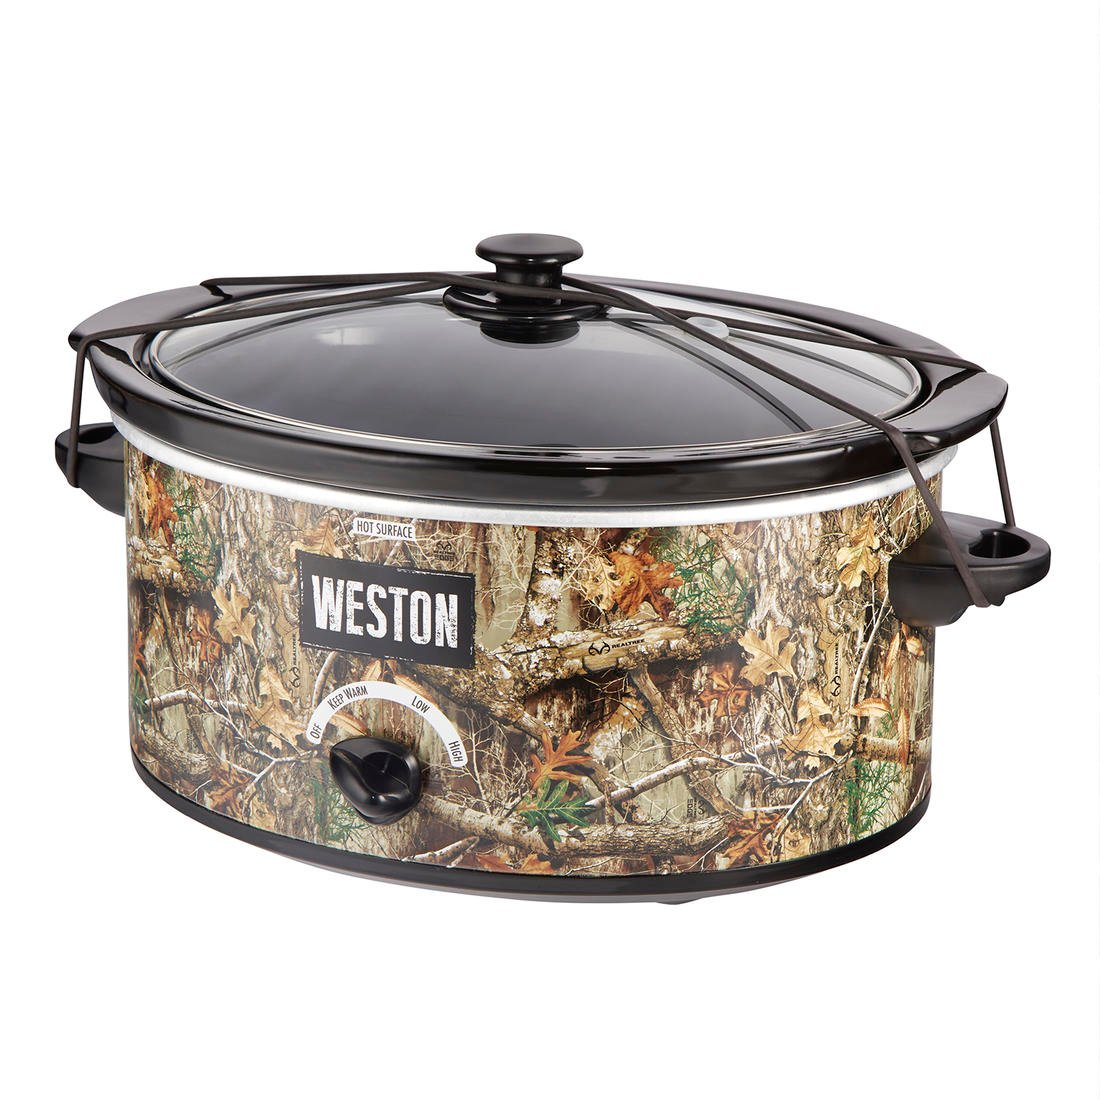 The Weston Realtree EDGE slow cooker is the perfect size for a family or deer camp.